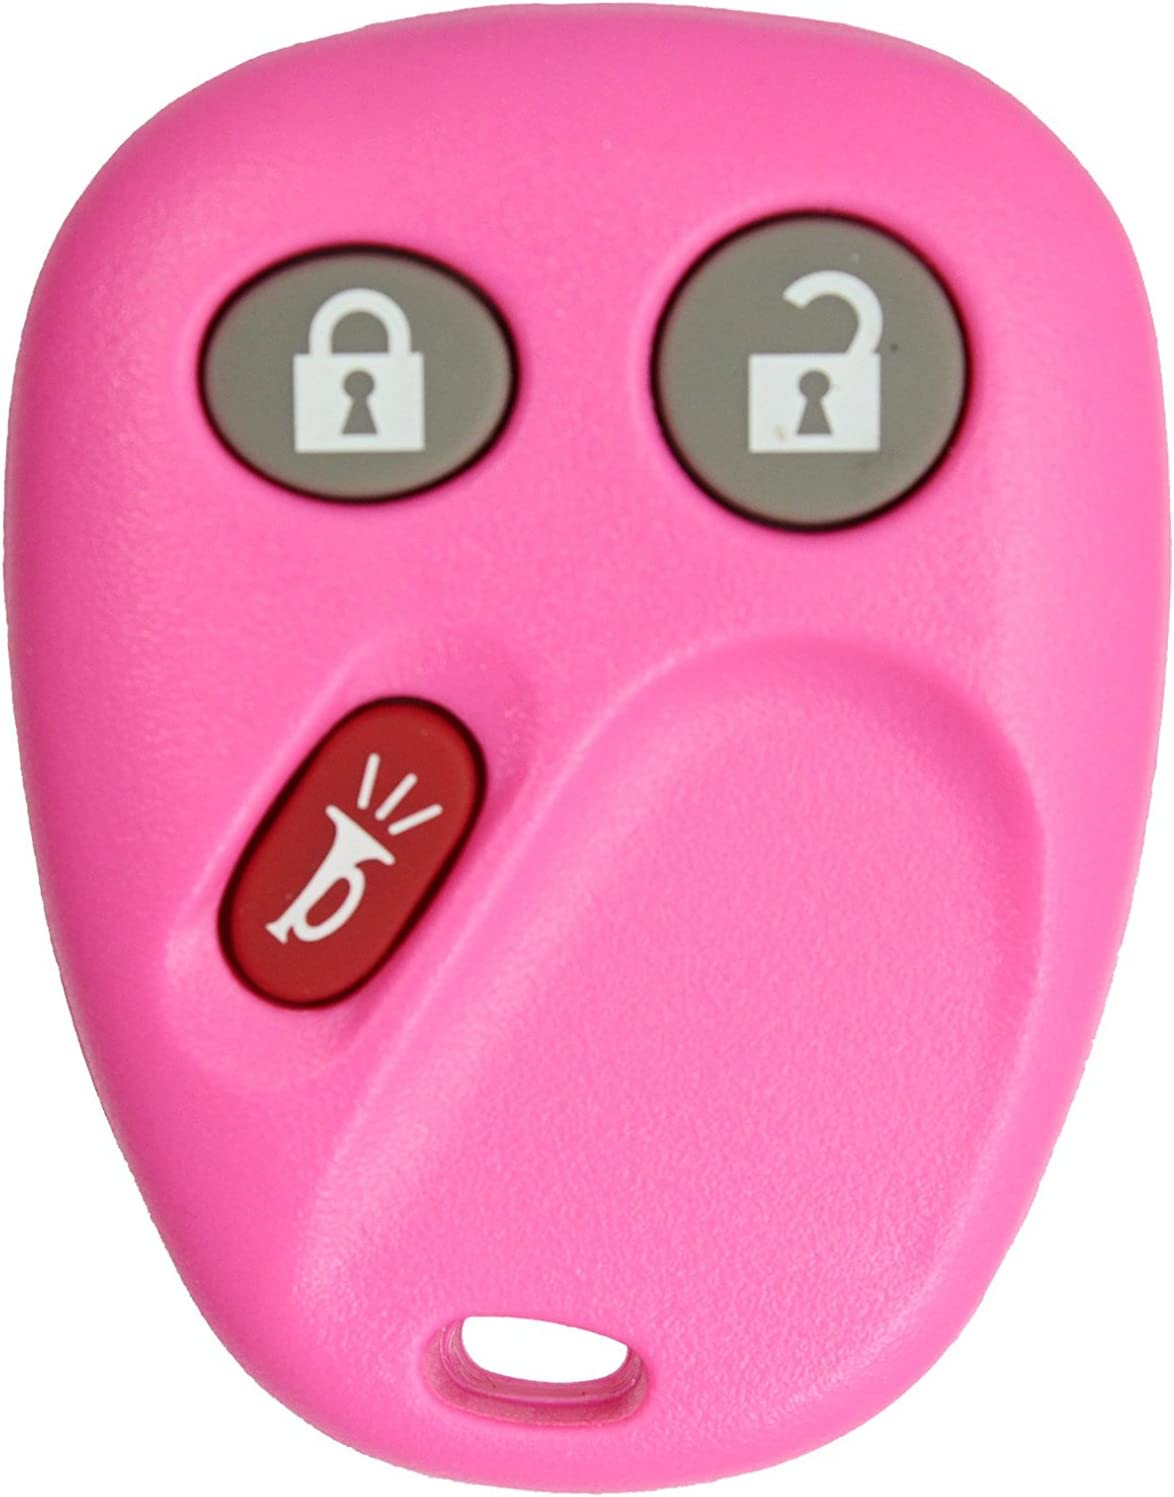 LHJ011 ReplaceMyRemote NEW Shell Only Keyless Entry Remote Control Car Key Fob Shell//Case//Housing for FCC ID Red